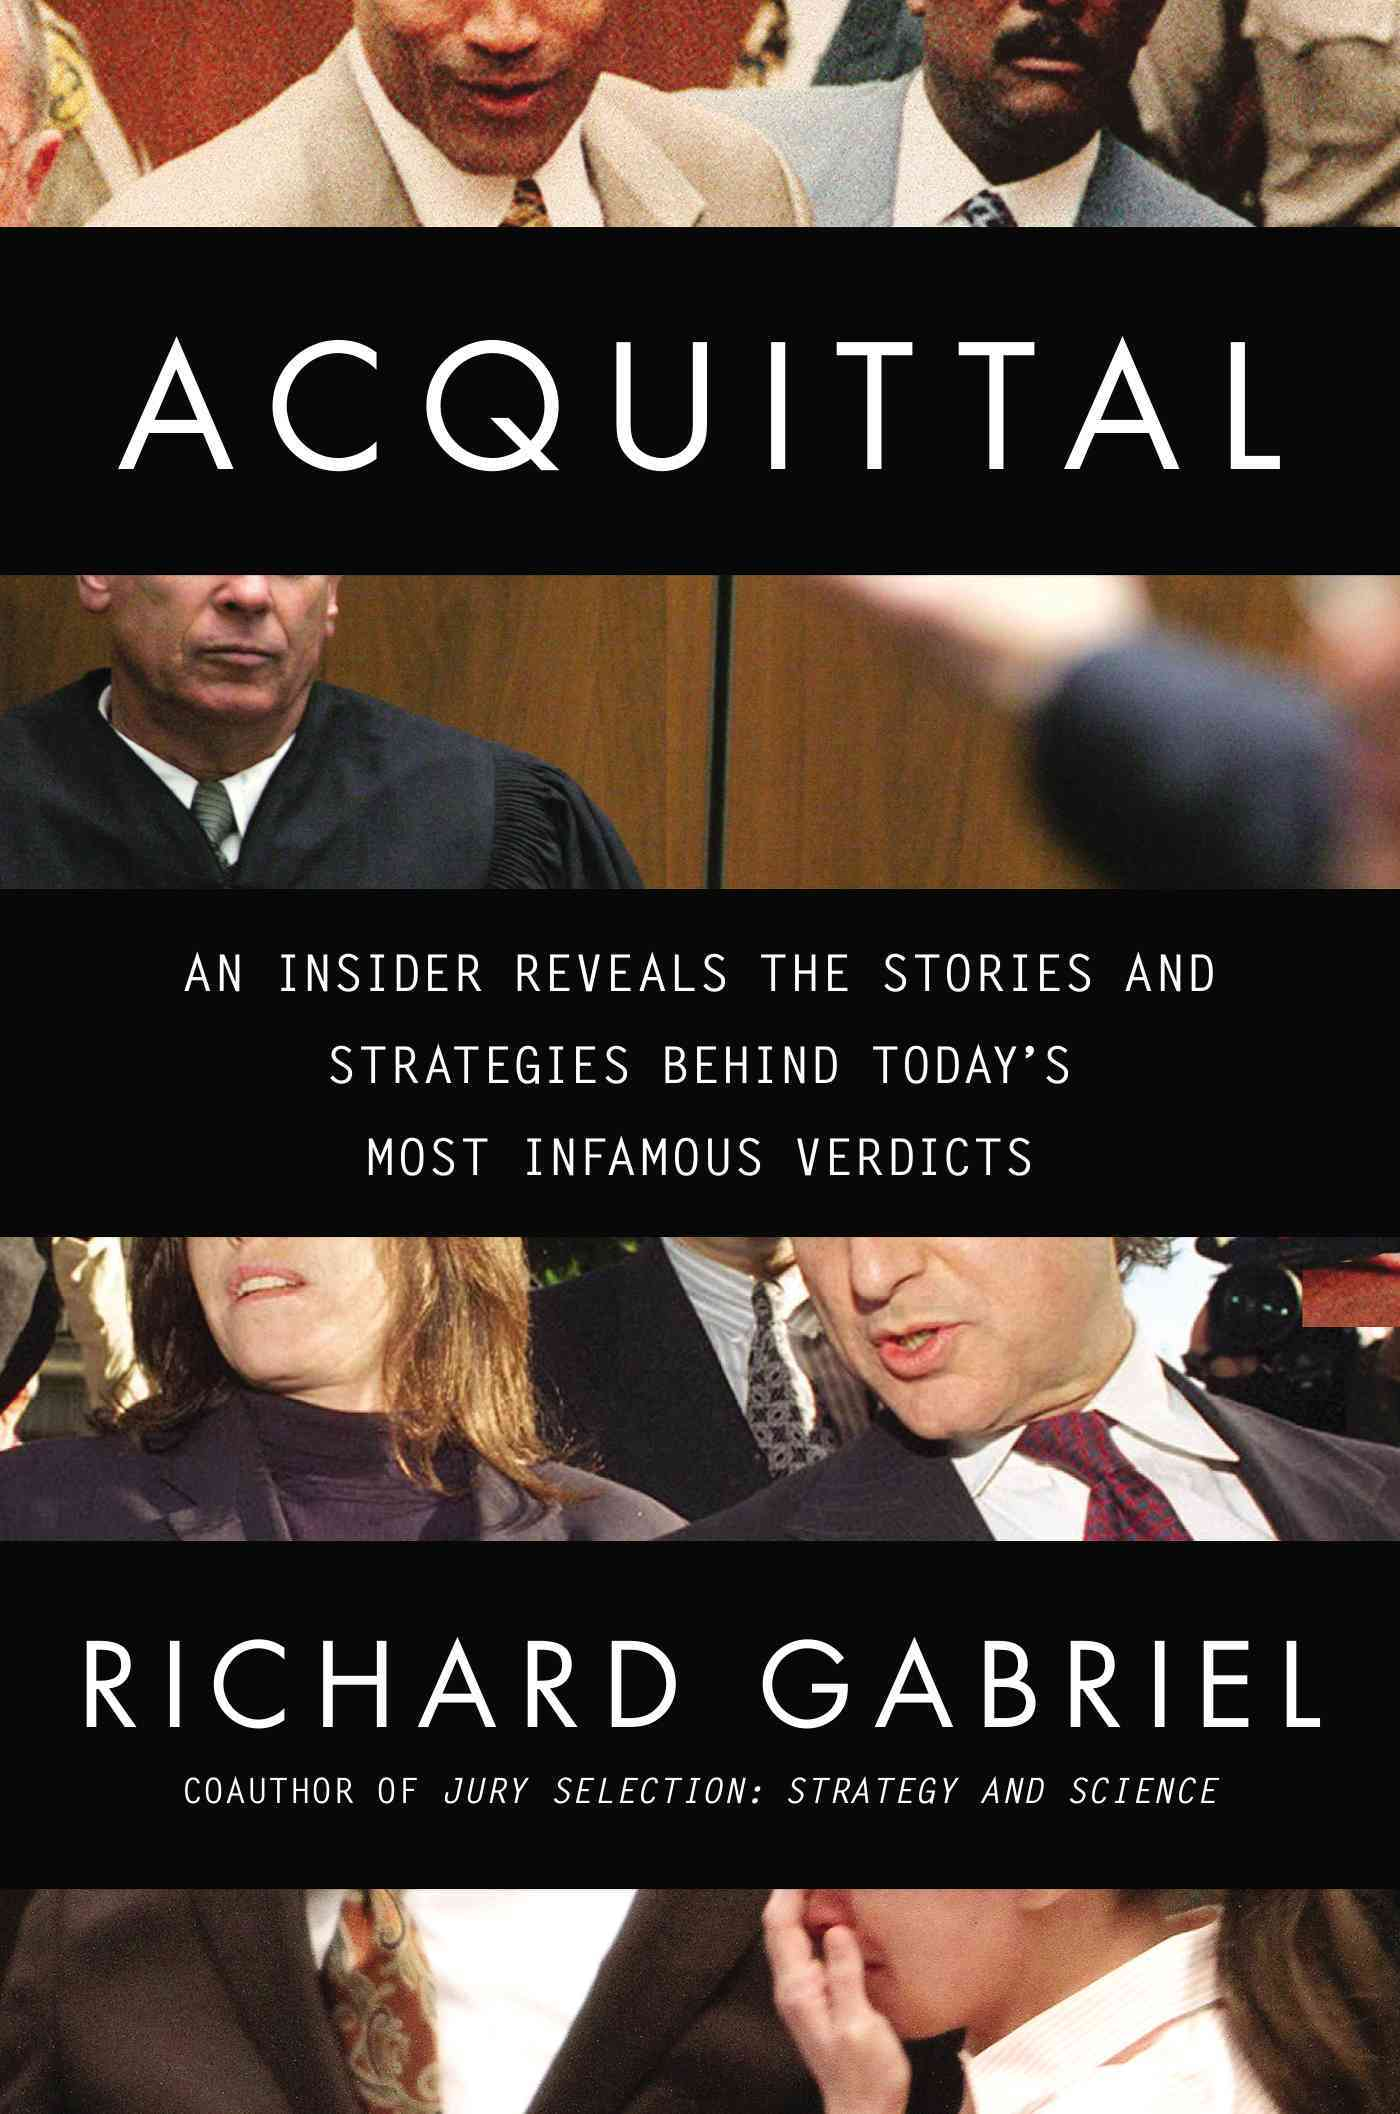 Acquittal: An Insider Reveals the Stories and Strategies Behind Today's Most Infamous Verdicts (Hardcover)